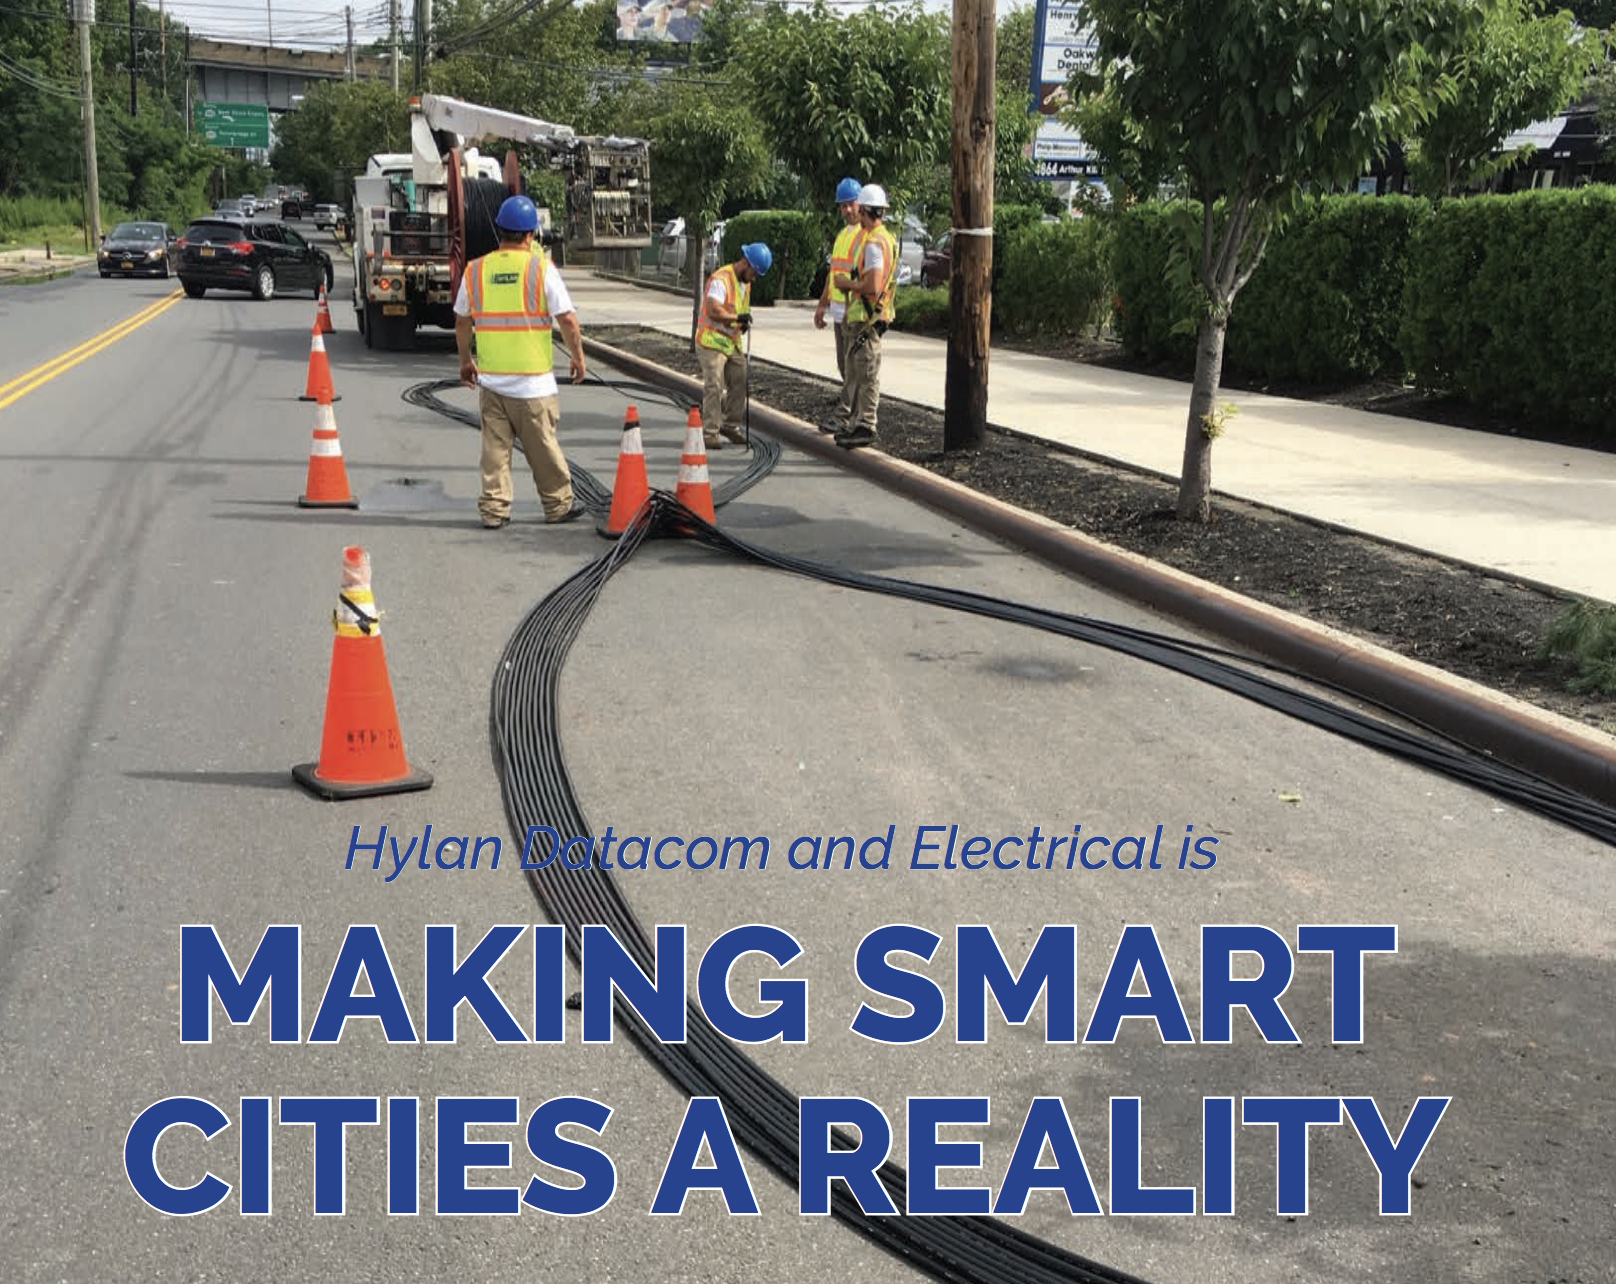 Hylan: Making Smart Cities a Reality